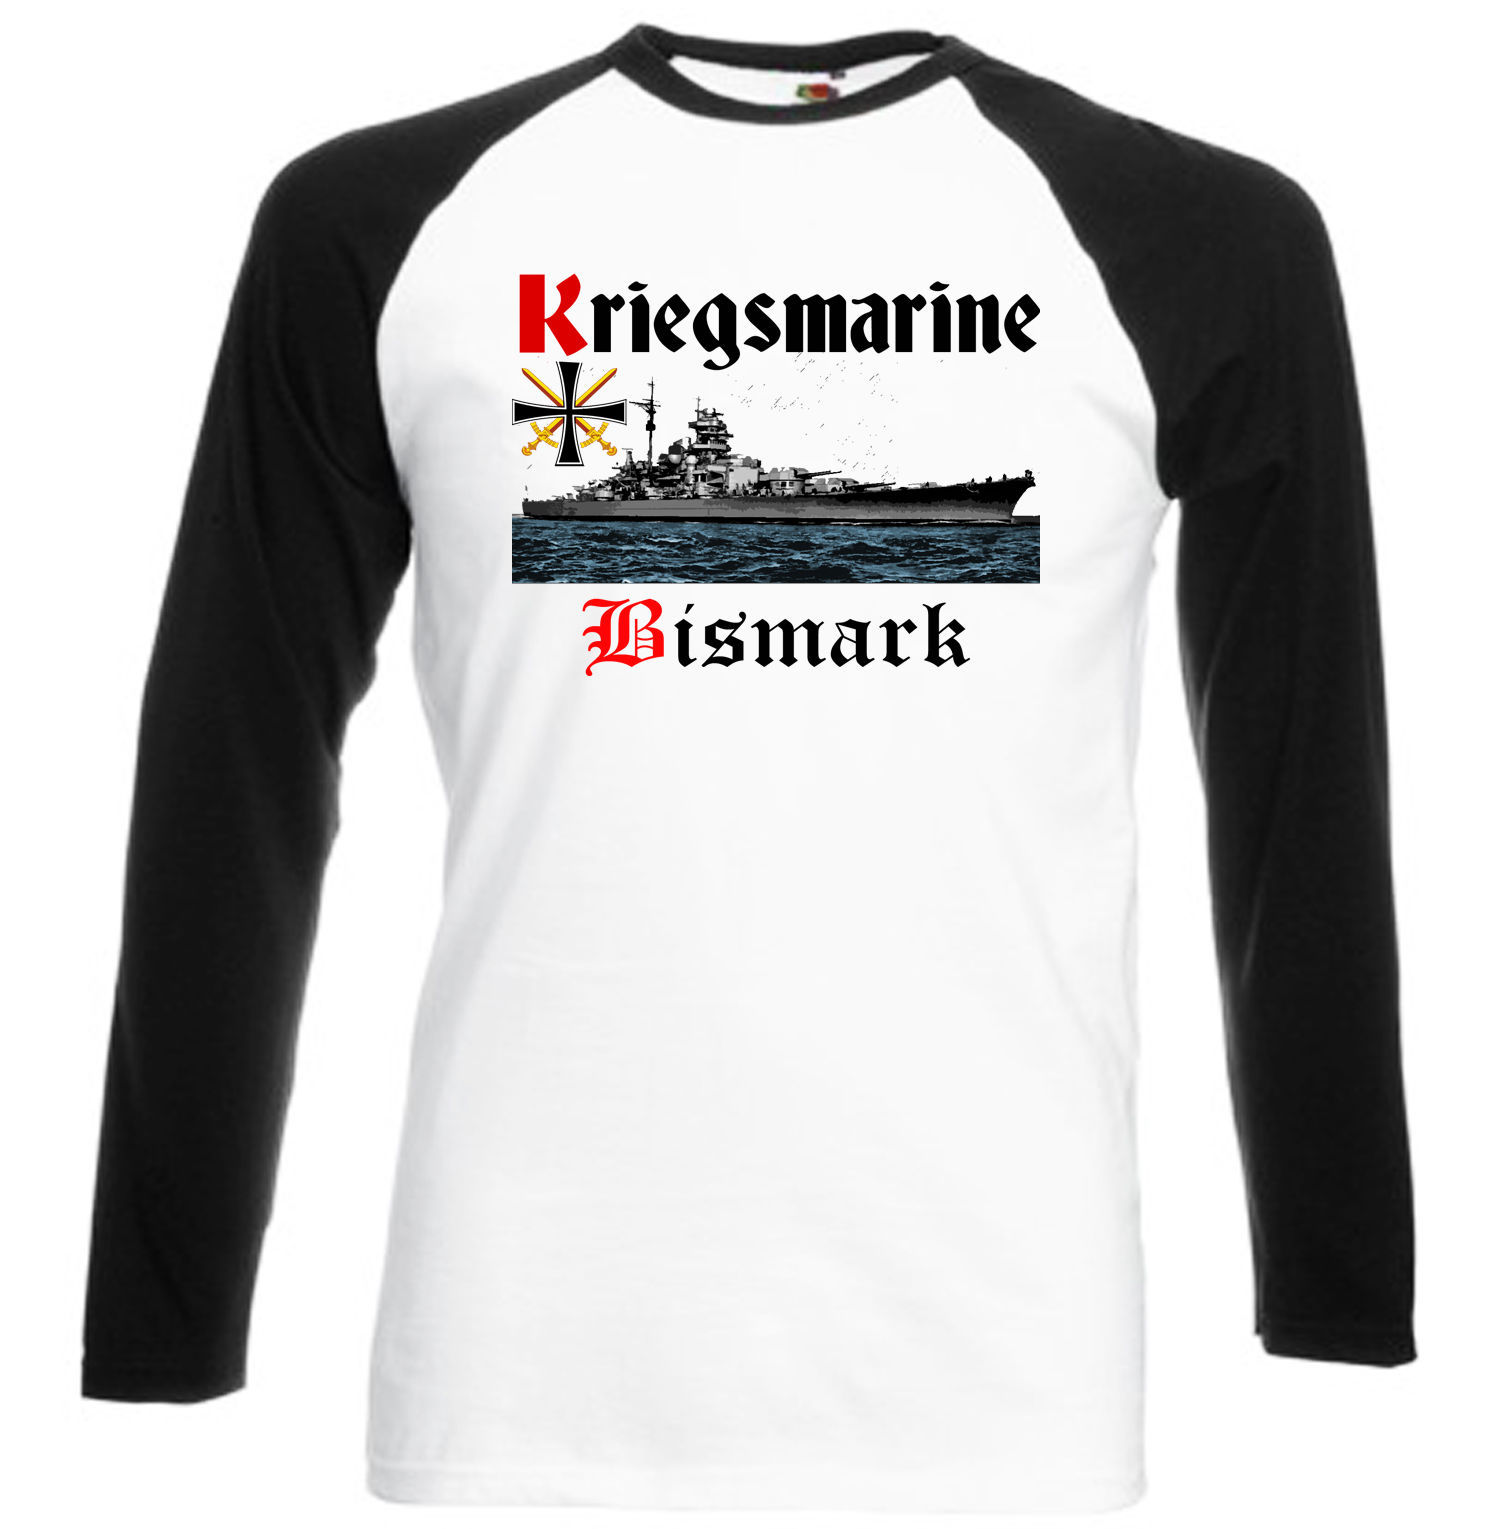 Primary image for KRIEGSMARINE BISMARCK GERMANY WWII - BLACK SLEEVED BASEBALL TSHIRT S-M-L-XL-XXL